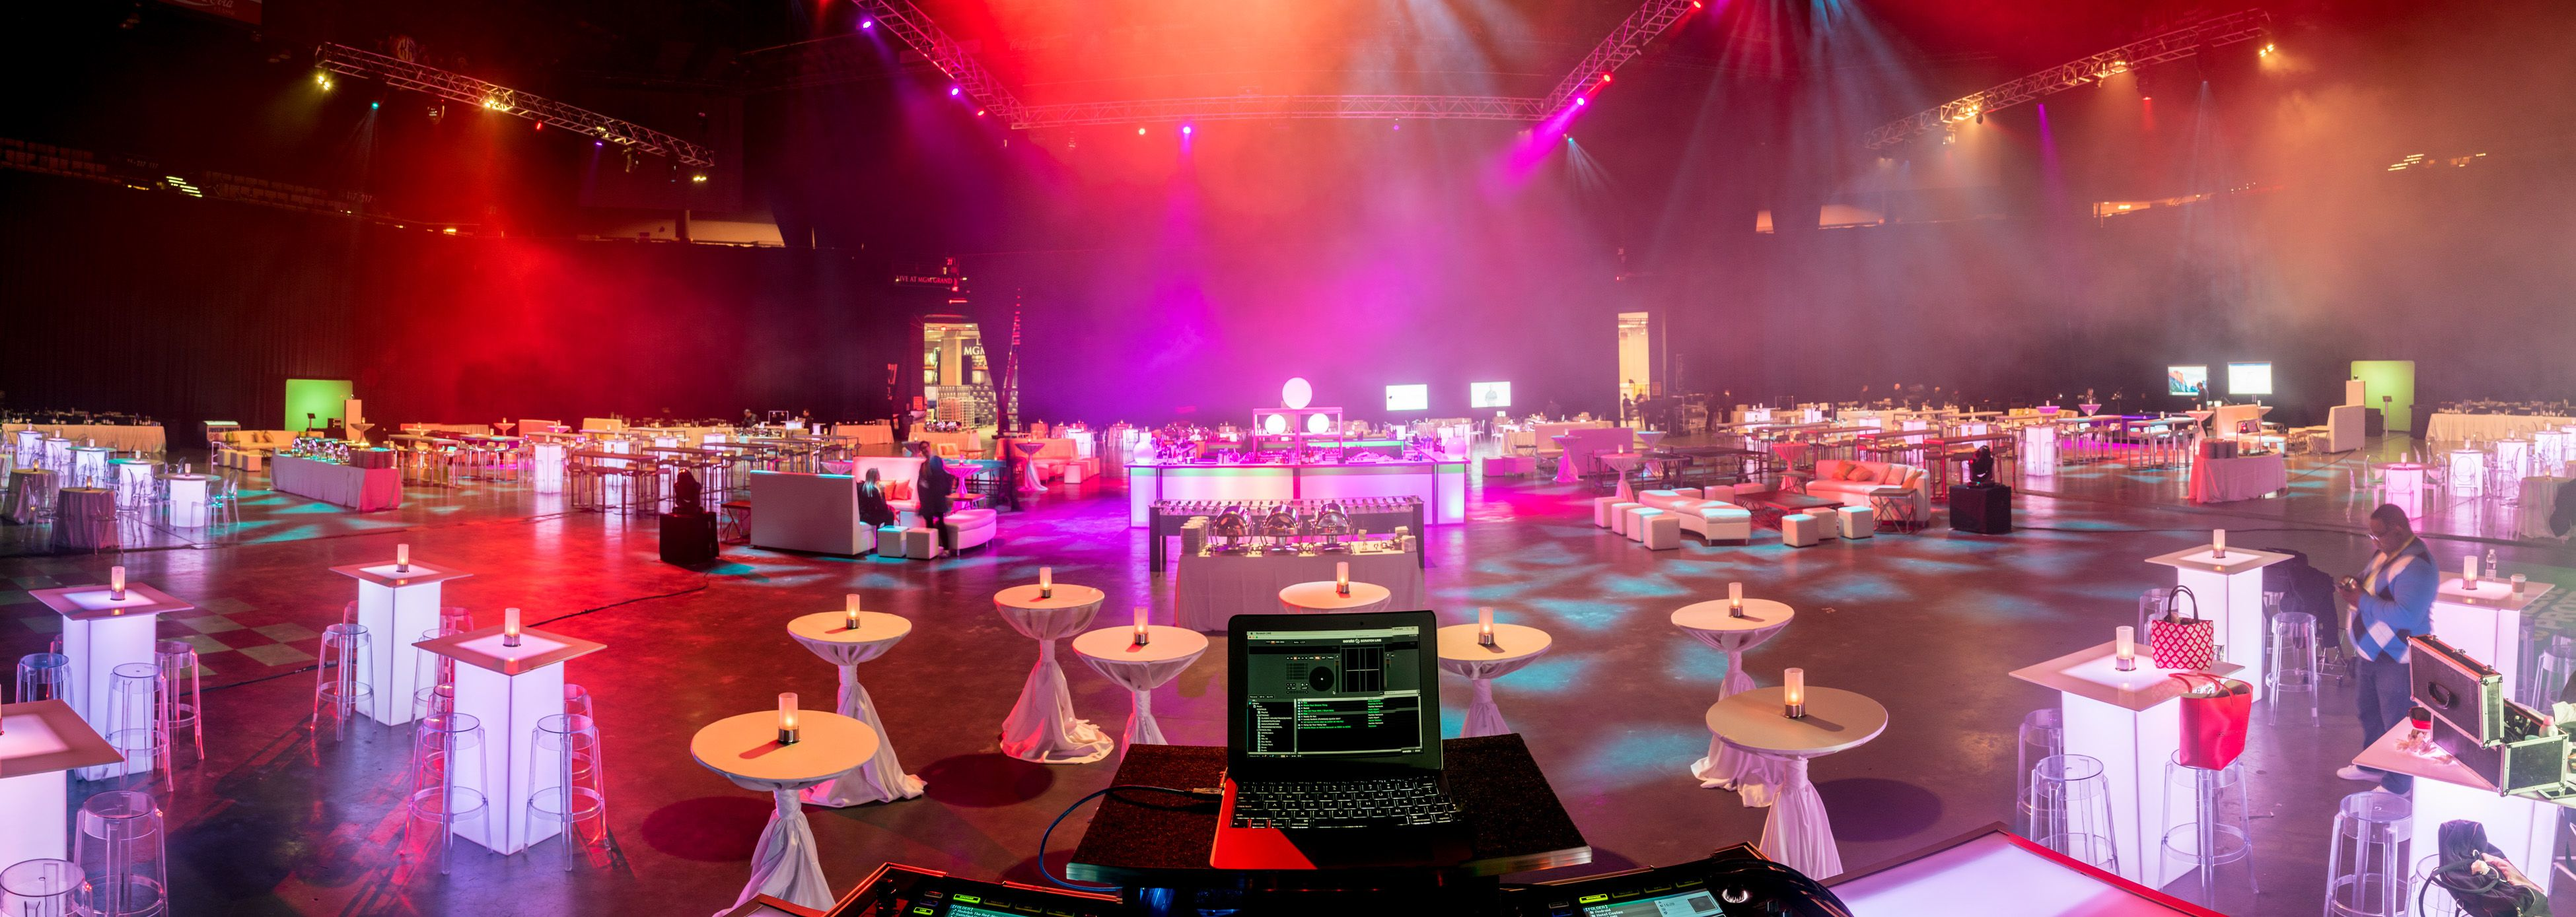 Favorite Corporate Event Venue: MGM Grande Garden Arena In Las Vegas